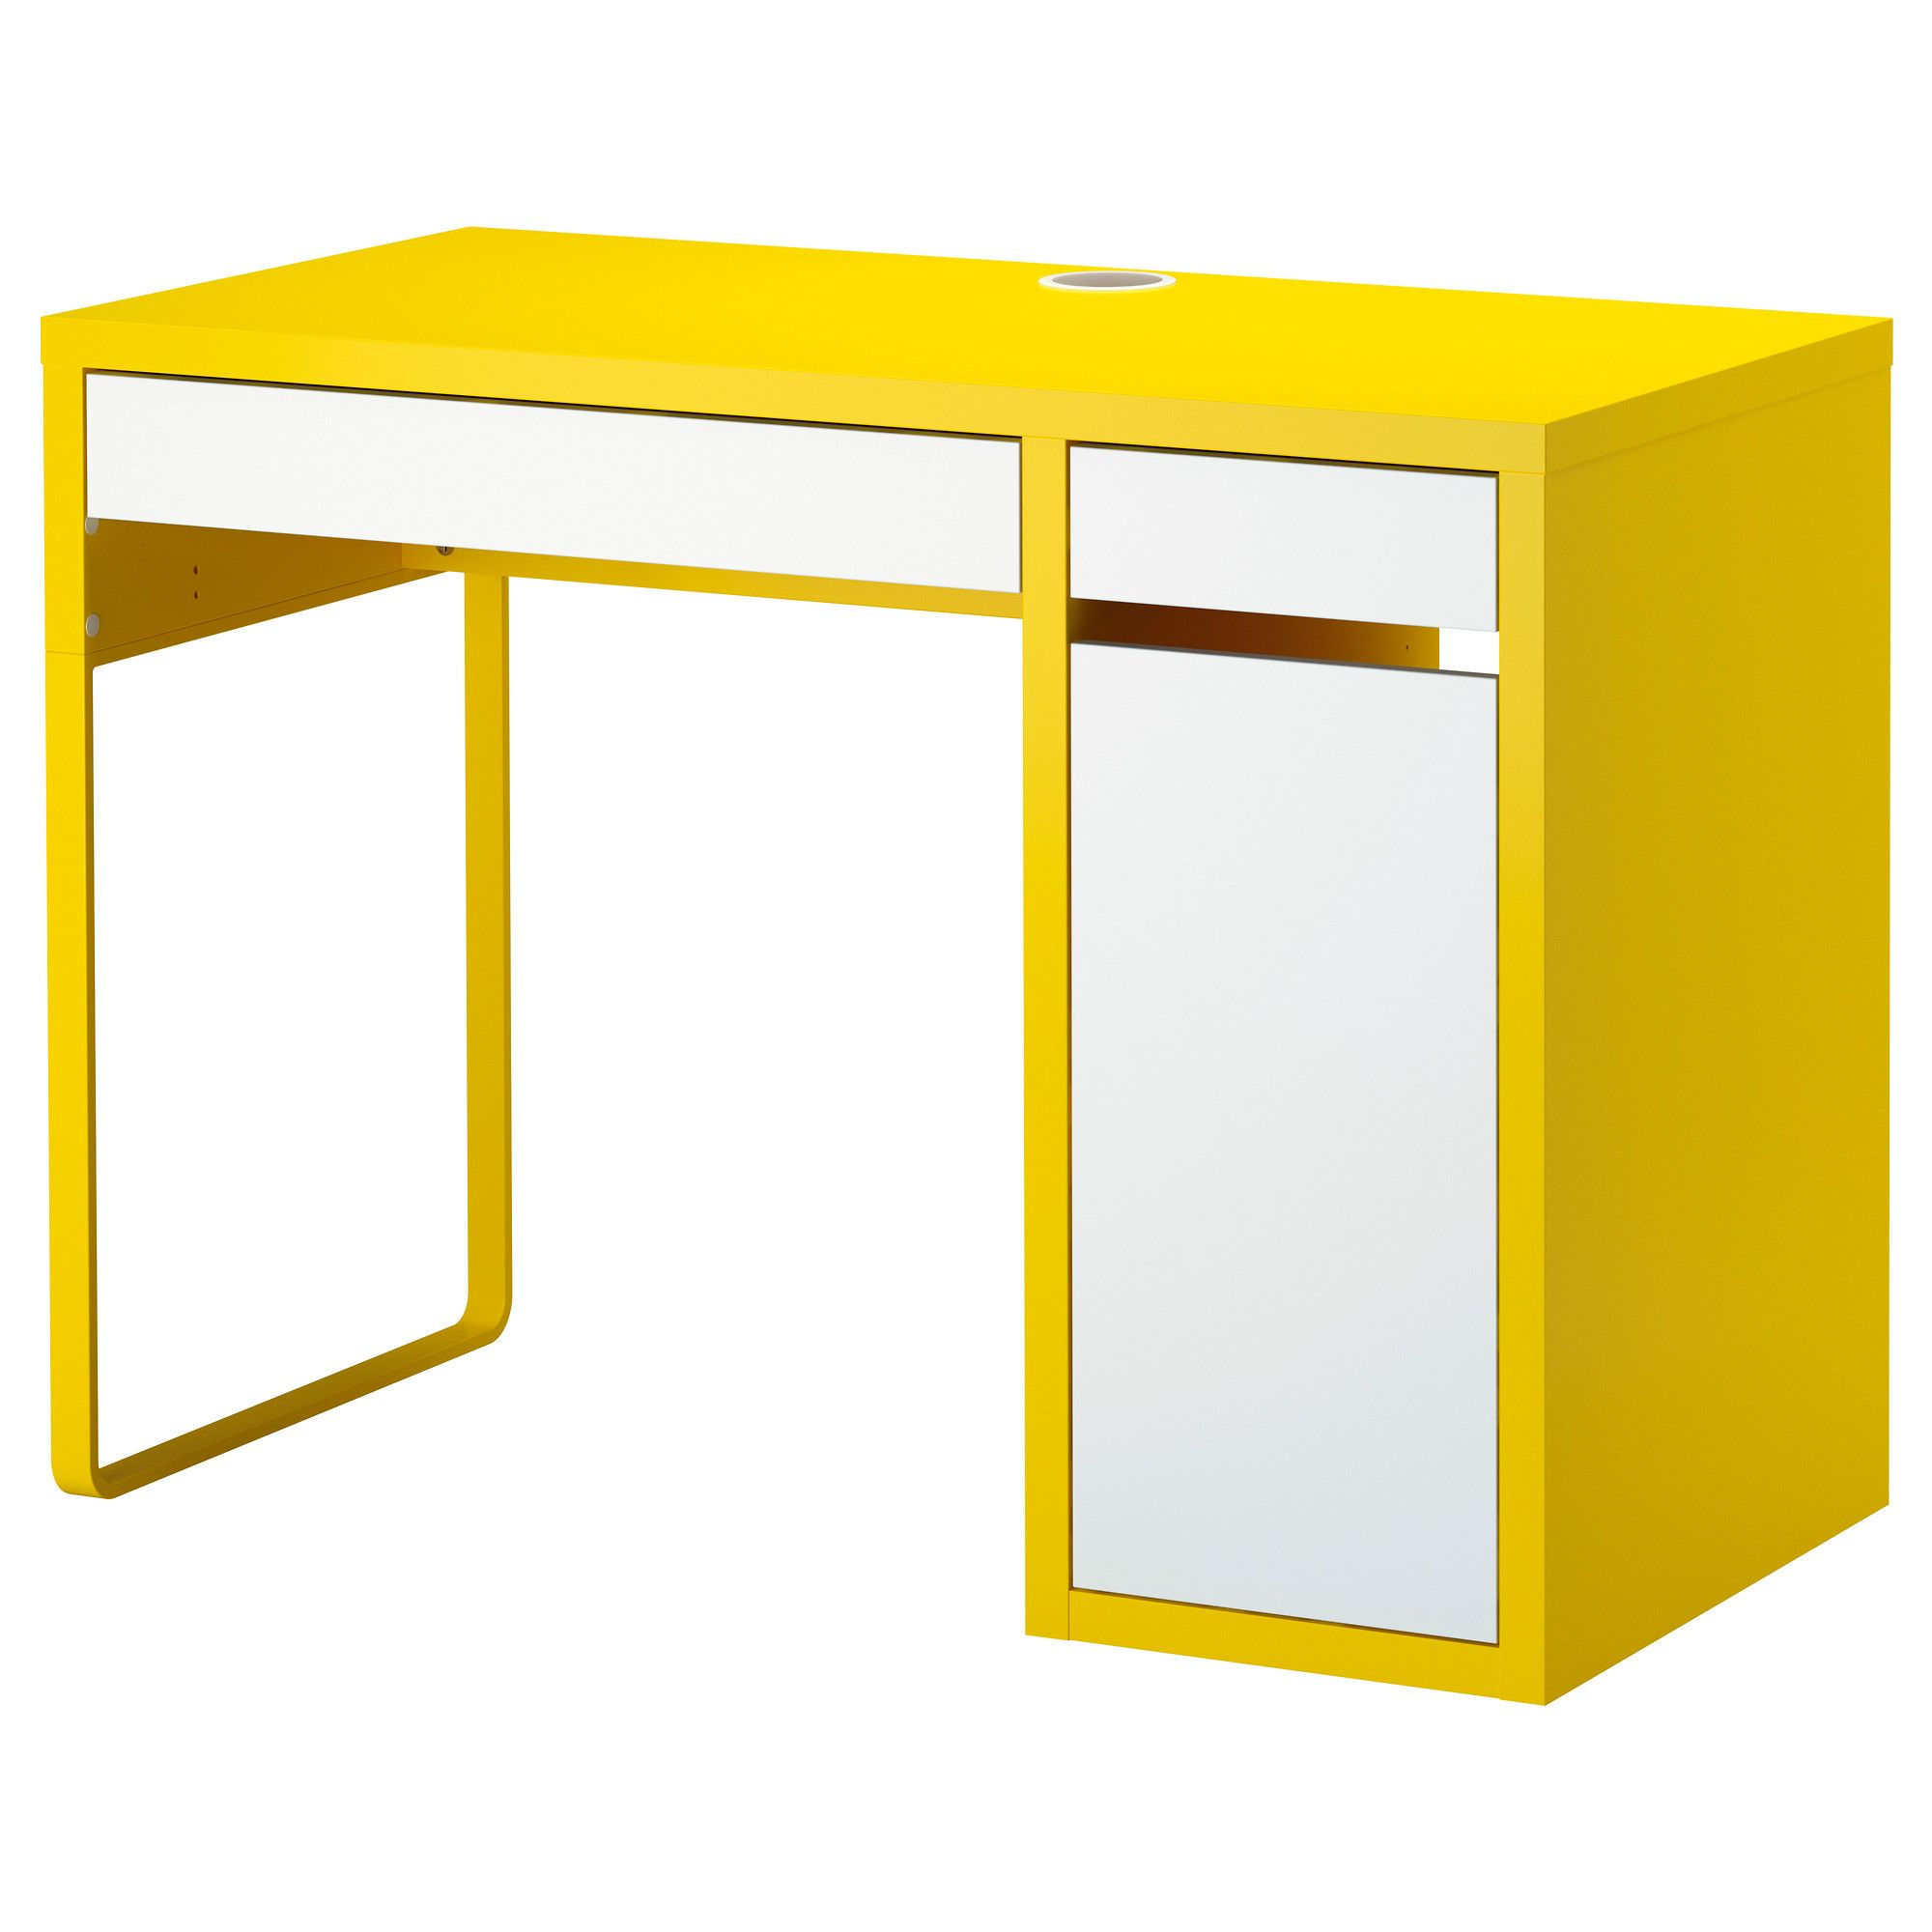 micke desk yellow white ikea desks pinterest. Black Bedroom Furniture Sets. Home Design Ideas